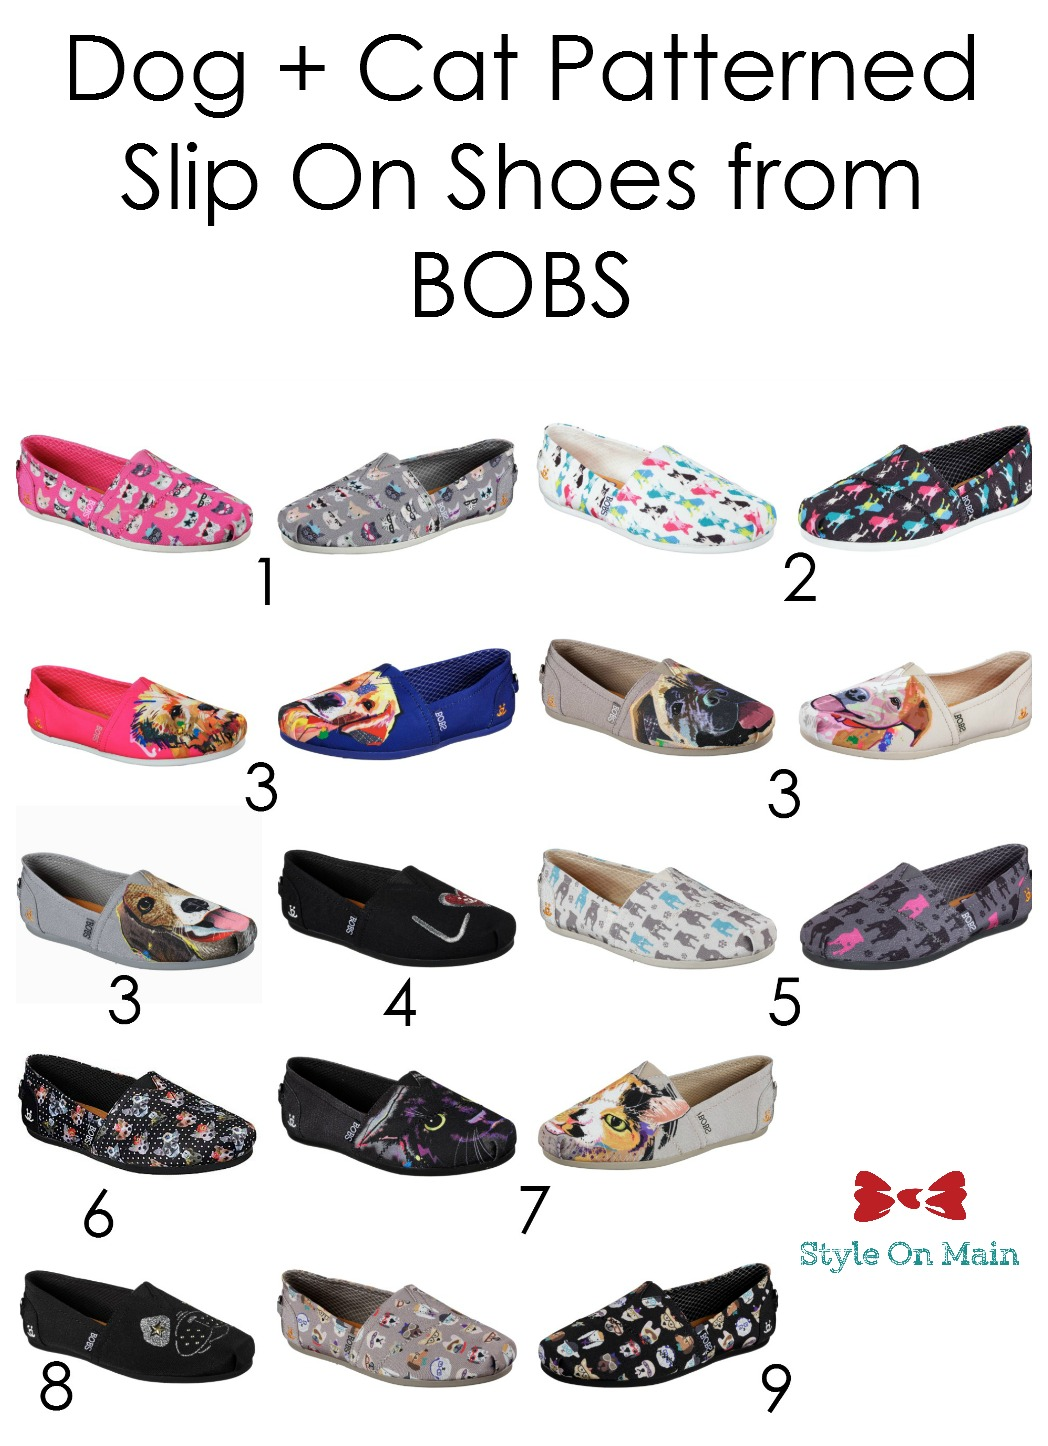 Dogs and Cats Printed Shoes from BOBS by Skechers.